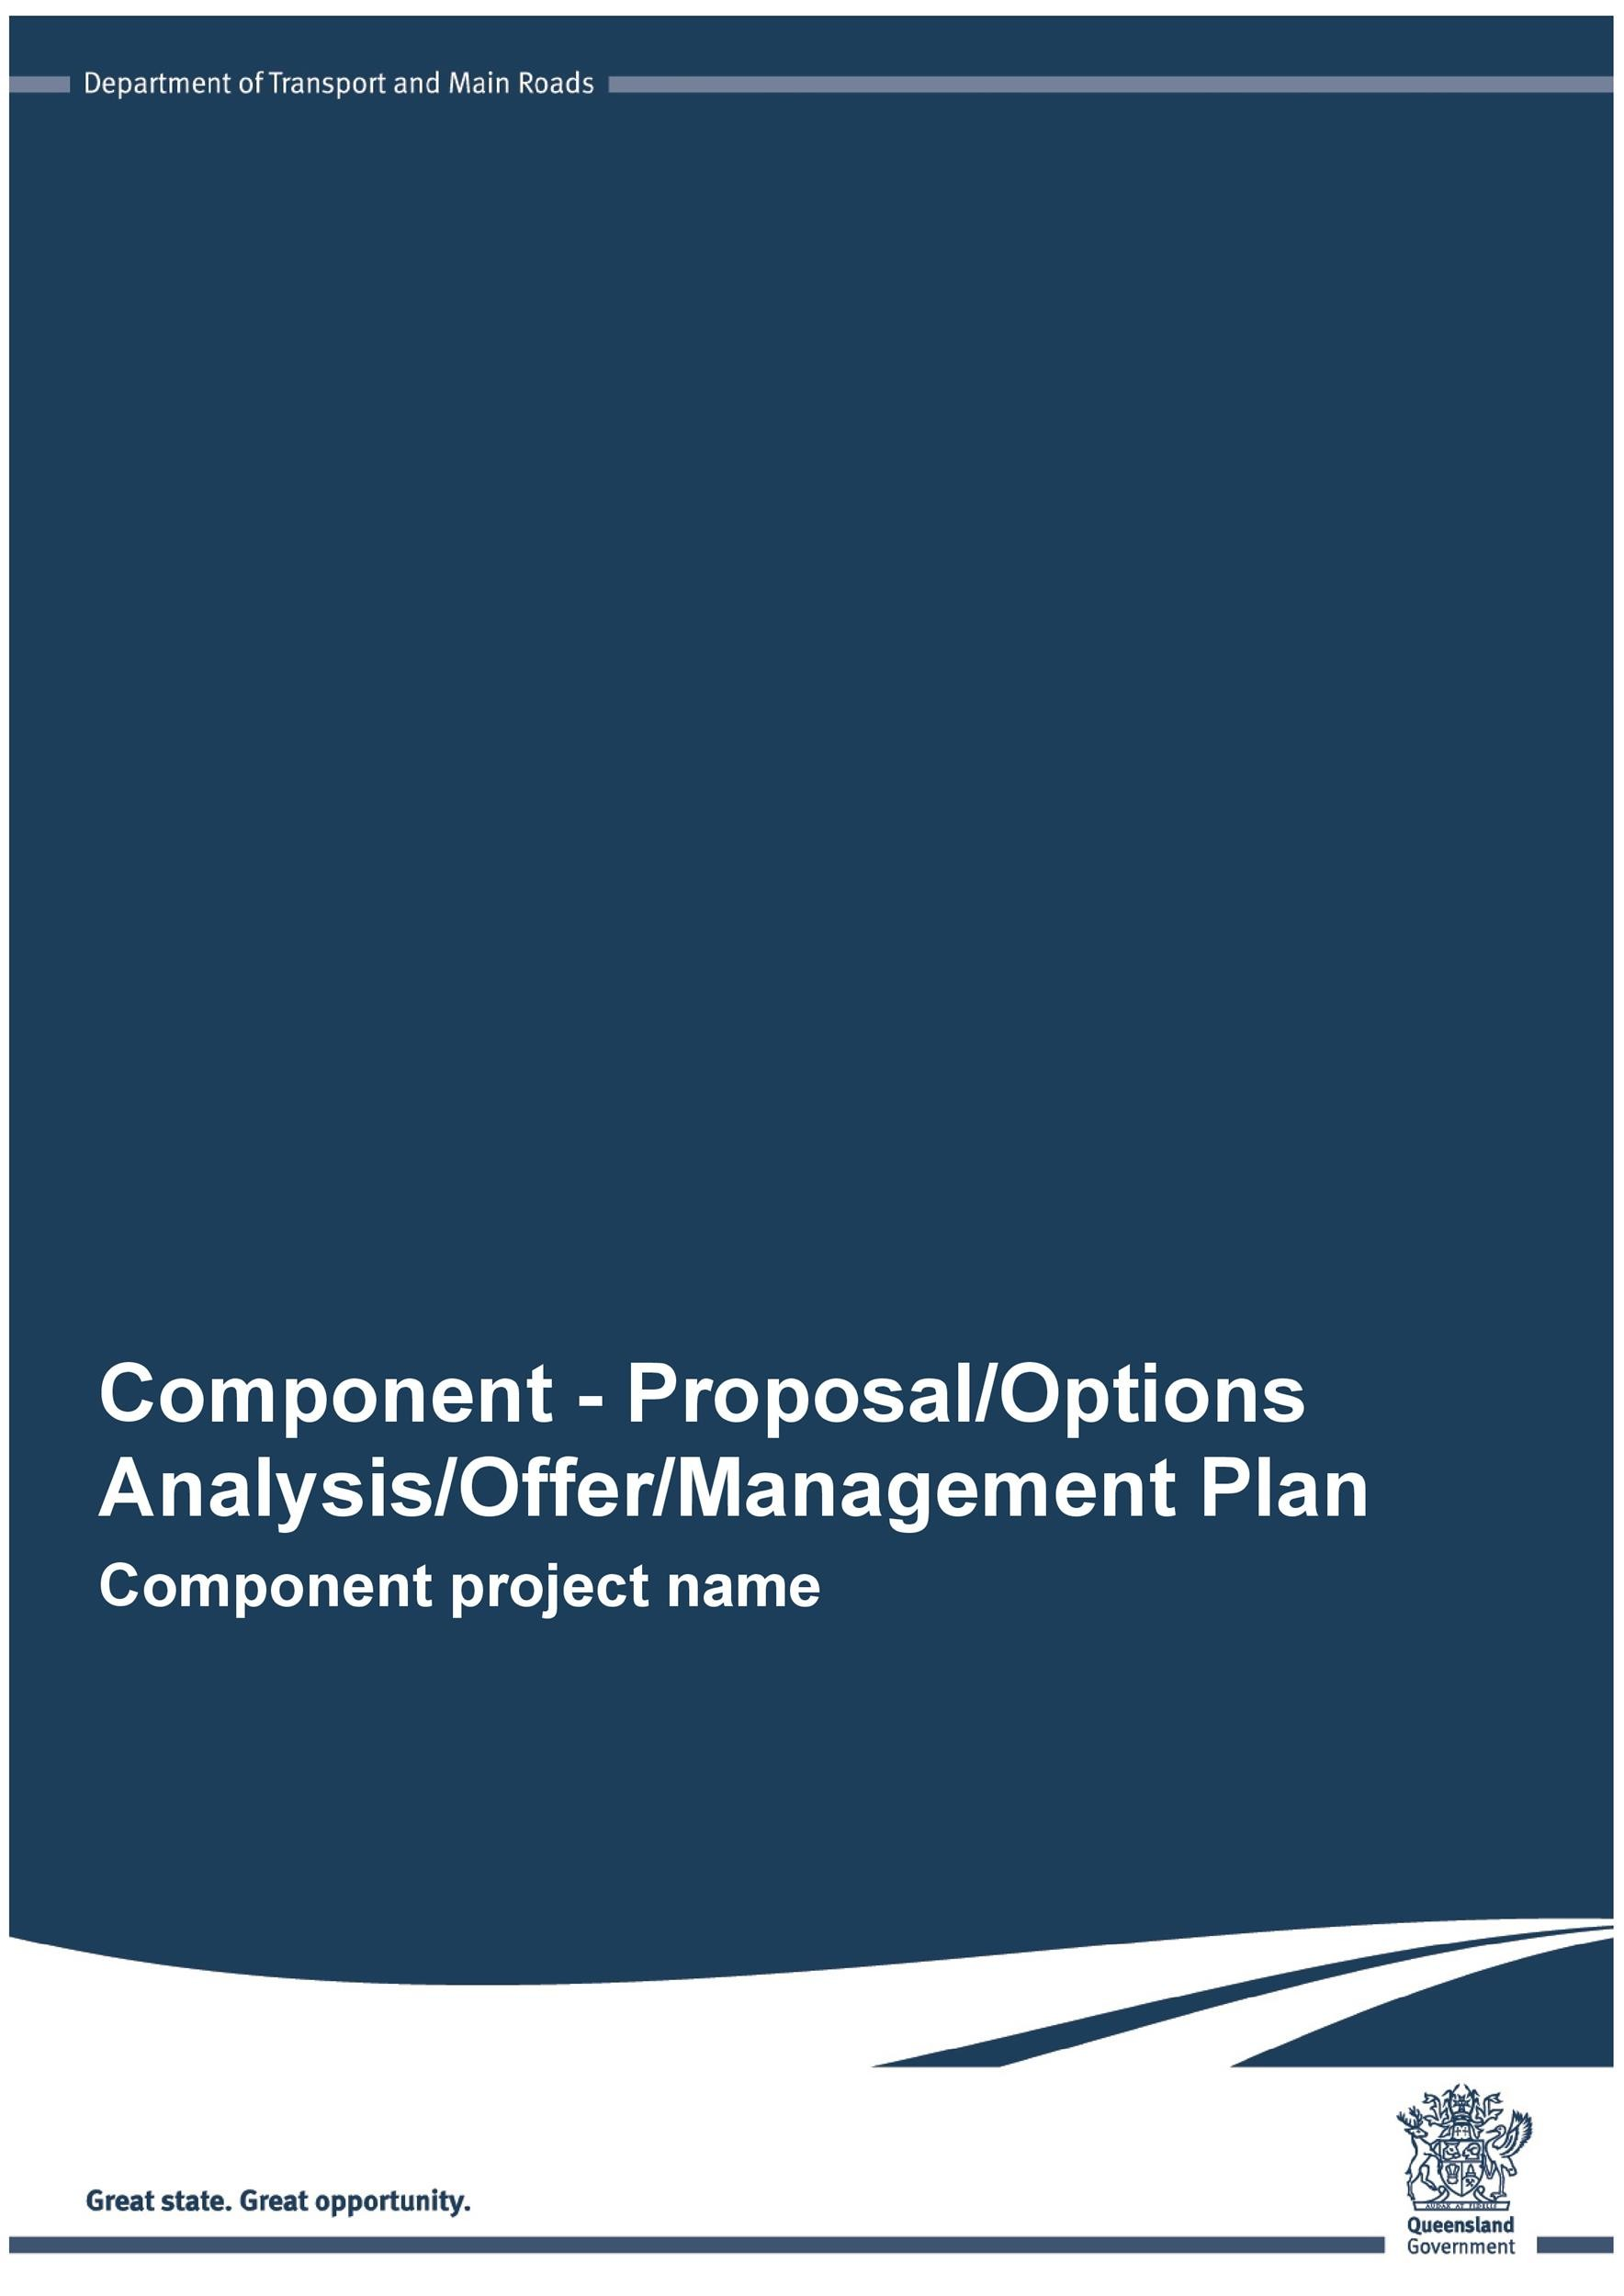 43 professional project proposal templates  u1405 templatelab